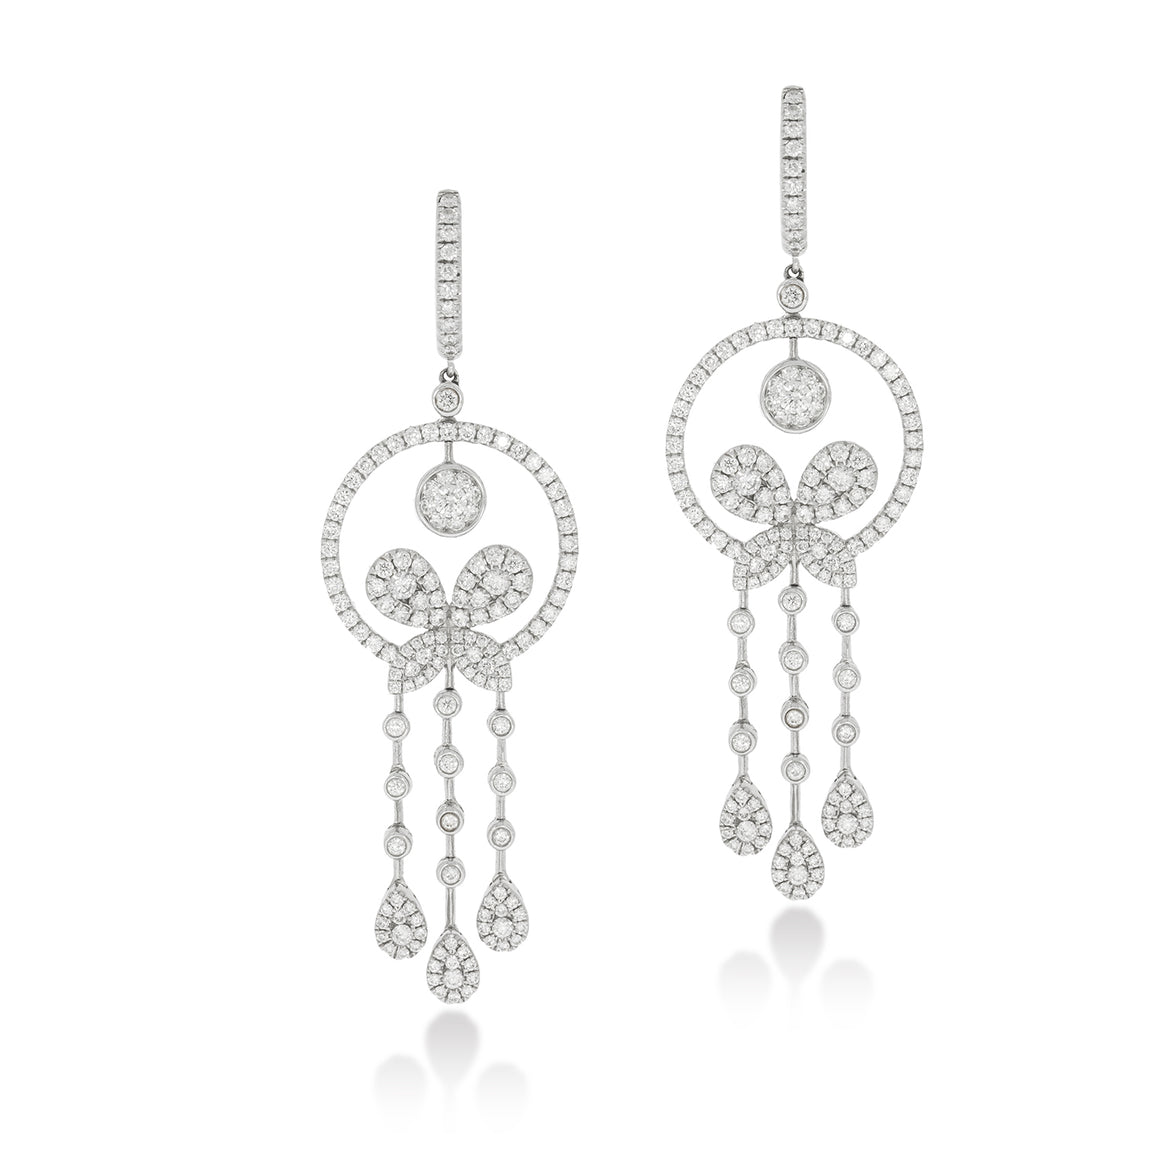 Drop Earrings set with total of 2.85 Round diamonds White gold, Flower shape.